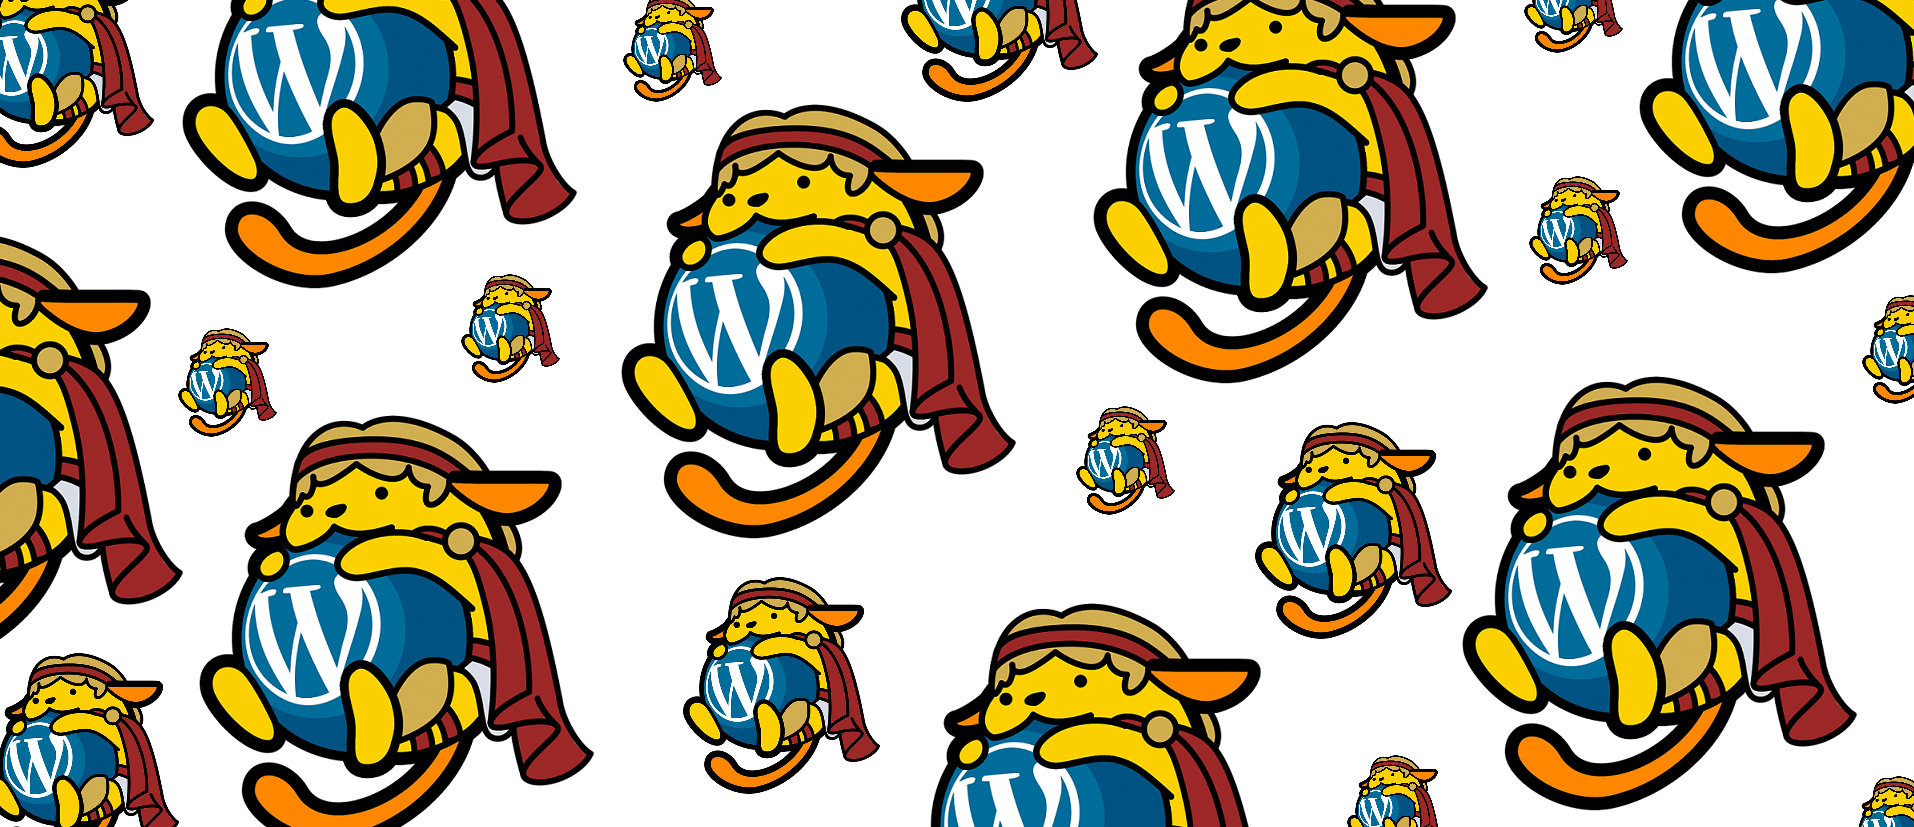 WordCamp Thessaloniki on 15-16 December 2018